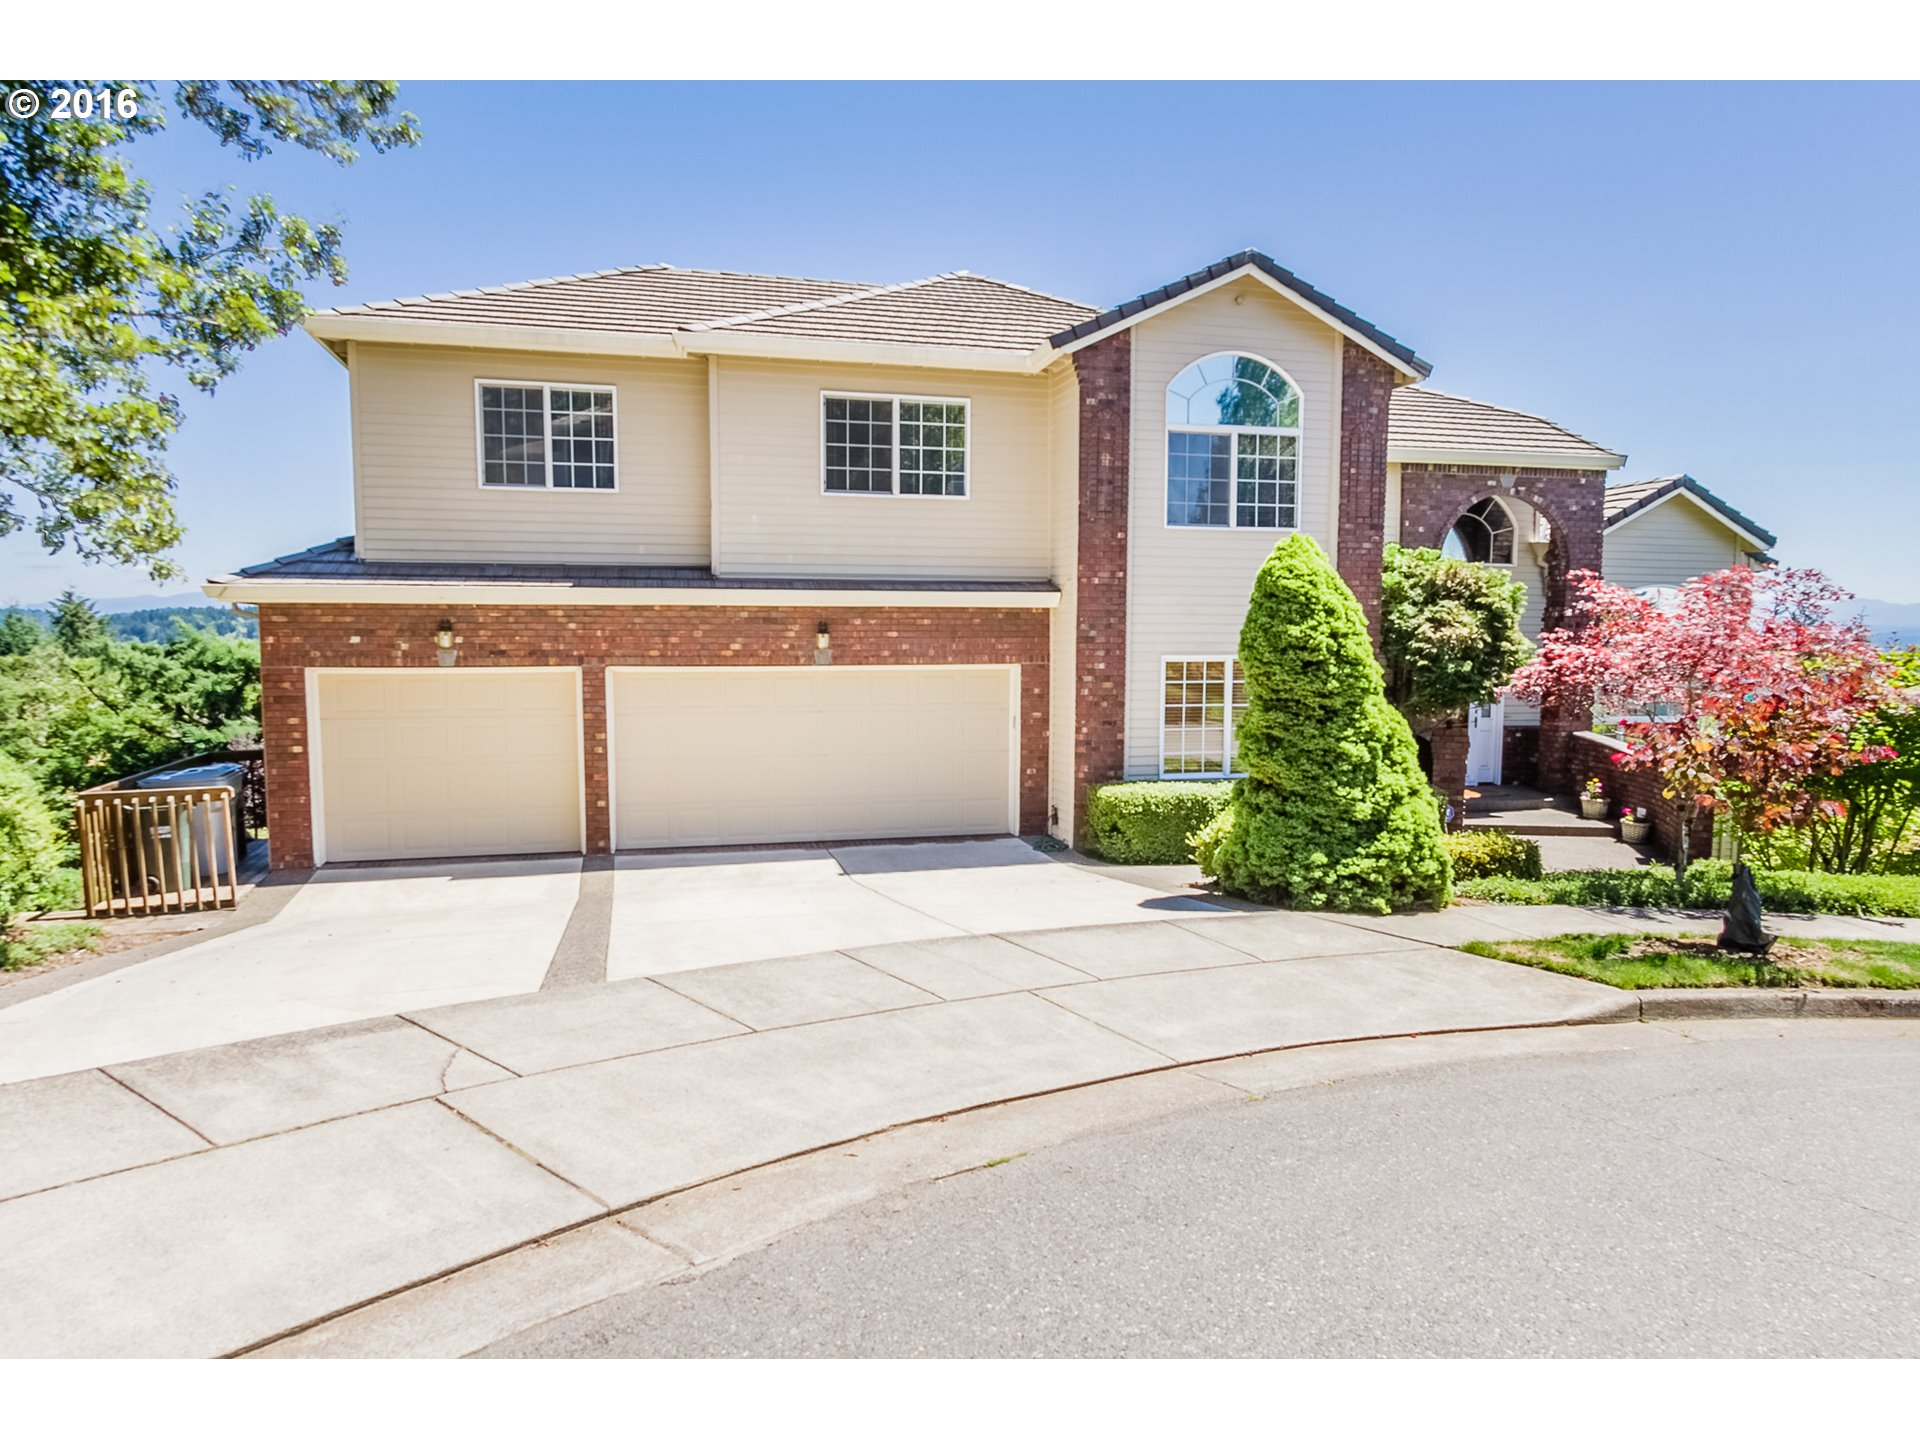 10920 SE VALLEY VIEW TER, Happy Valley, OR 97086